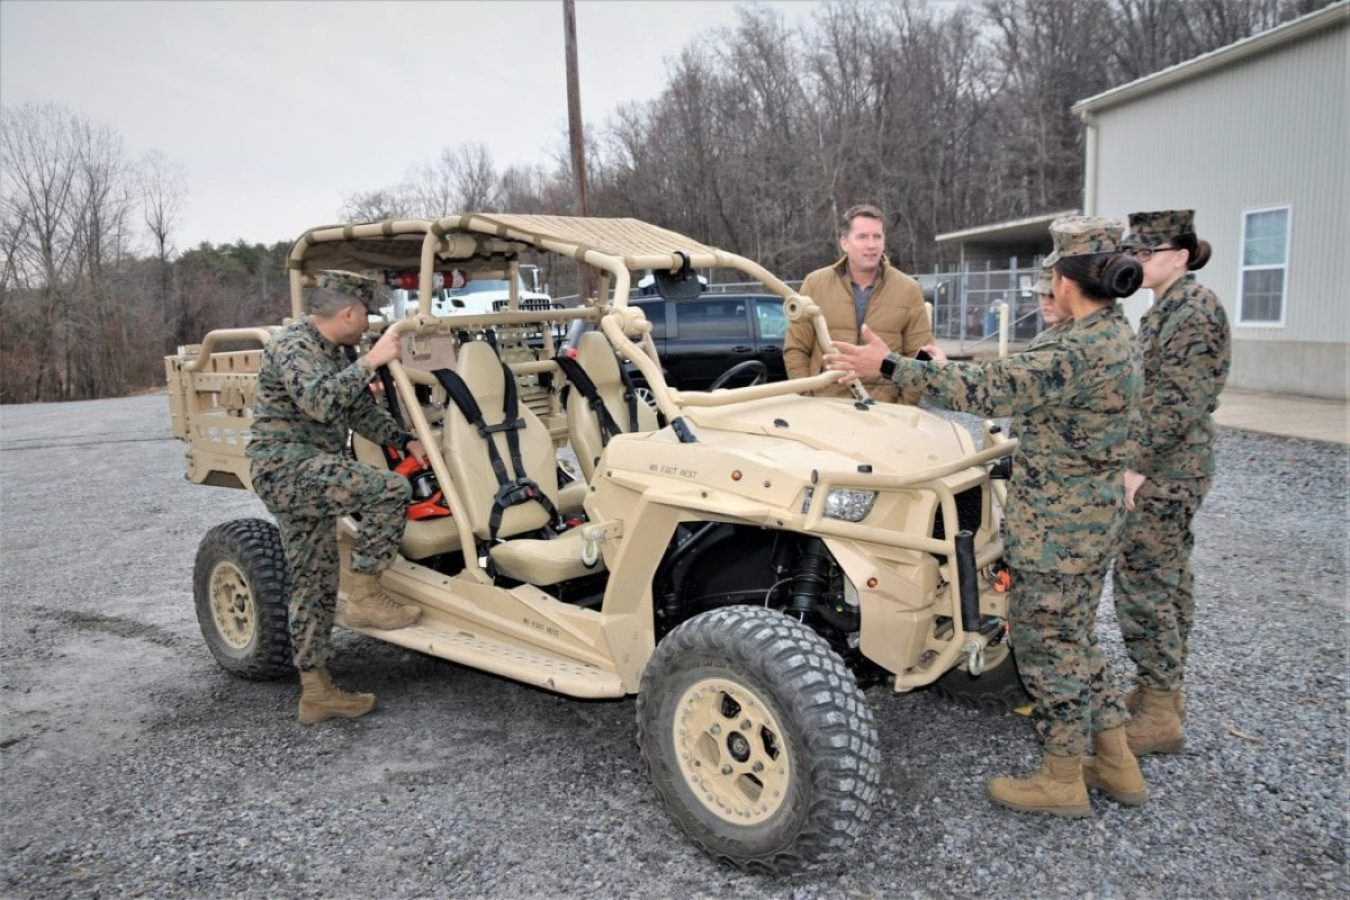 Jason Engstrom, center, a Utility Task Vehicle engineer with Program Executive Officer Land Systems, reviews several of the vehicles upgrades with Marines at the Transportation Demonstration Support Area aboard Marine Corps Base Quantico, Virginia, Dec. 4, 2019. (U.S. Marine Corps photo by Ashley Calingo)